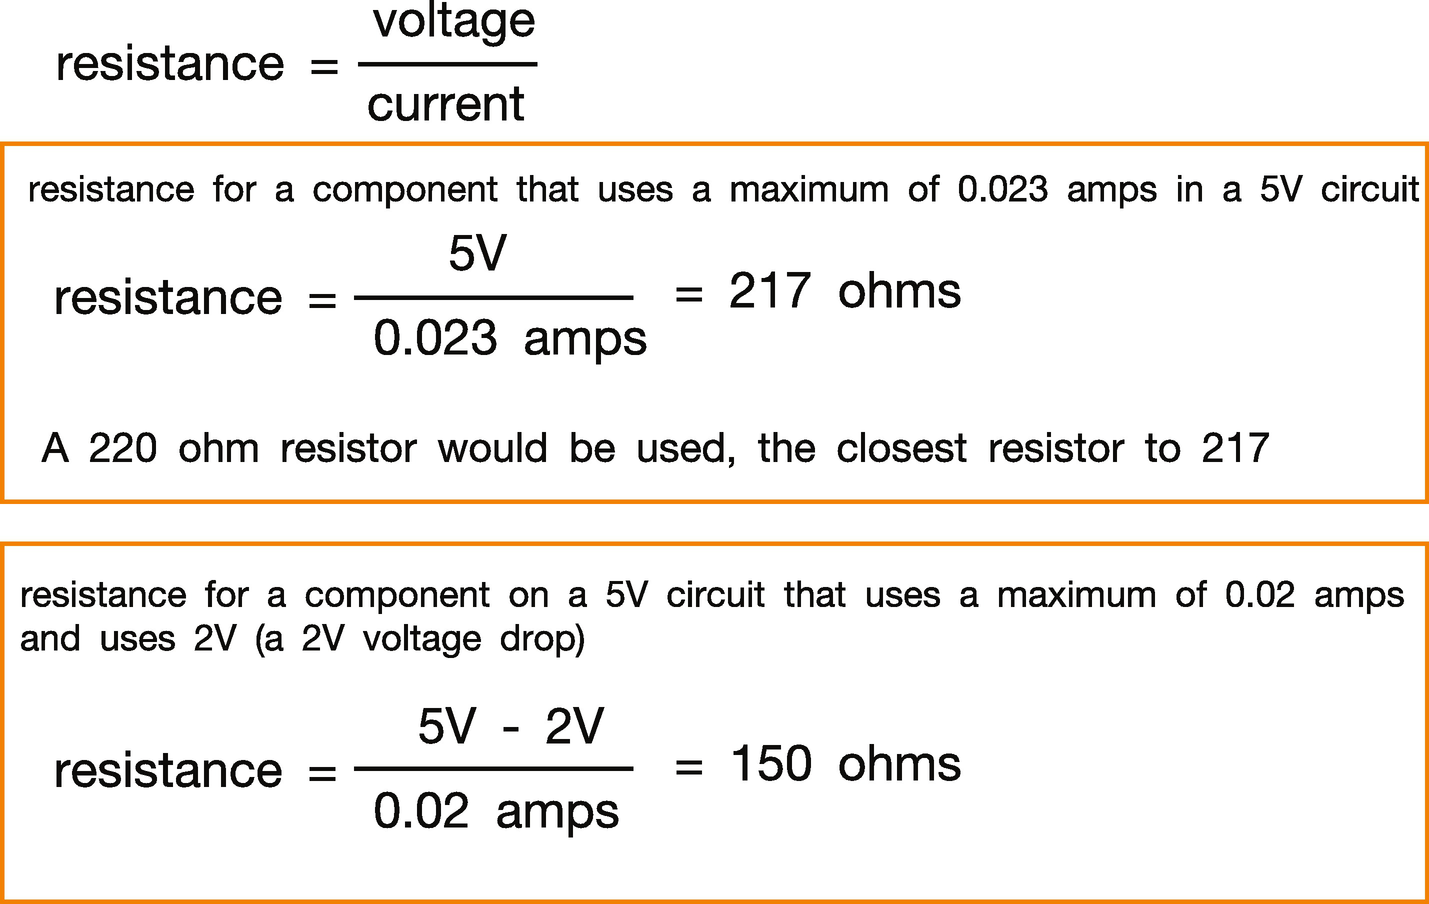 Arduino Circuits And Components Springerlink Open Circuit Resistance Image In New Window